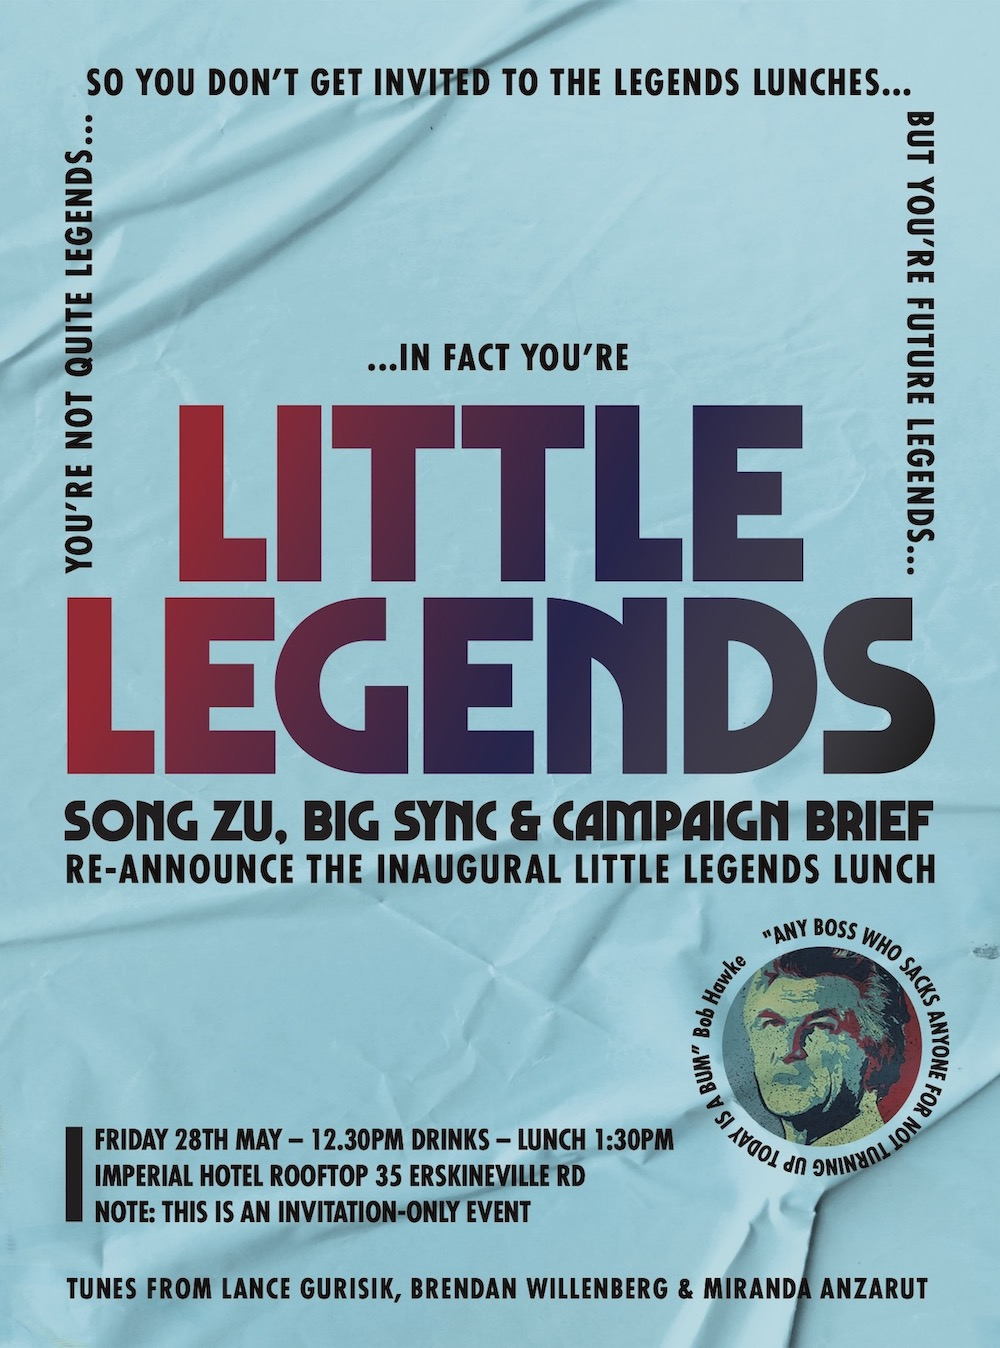 Song Zu, Big Sync and CB to hold Little Legends Lunch on May 28 at the Imperial Hotel, Sydney